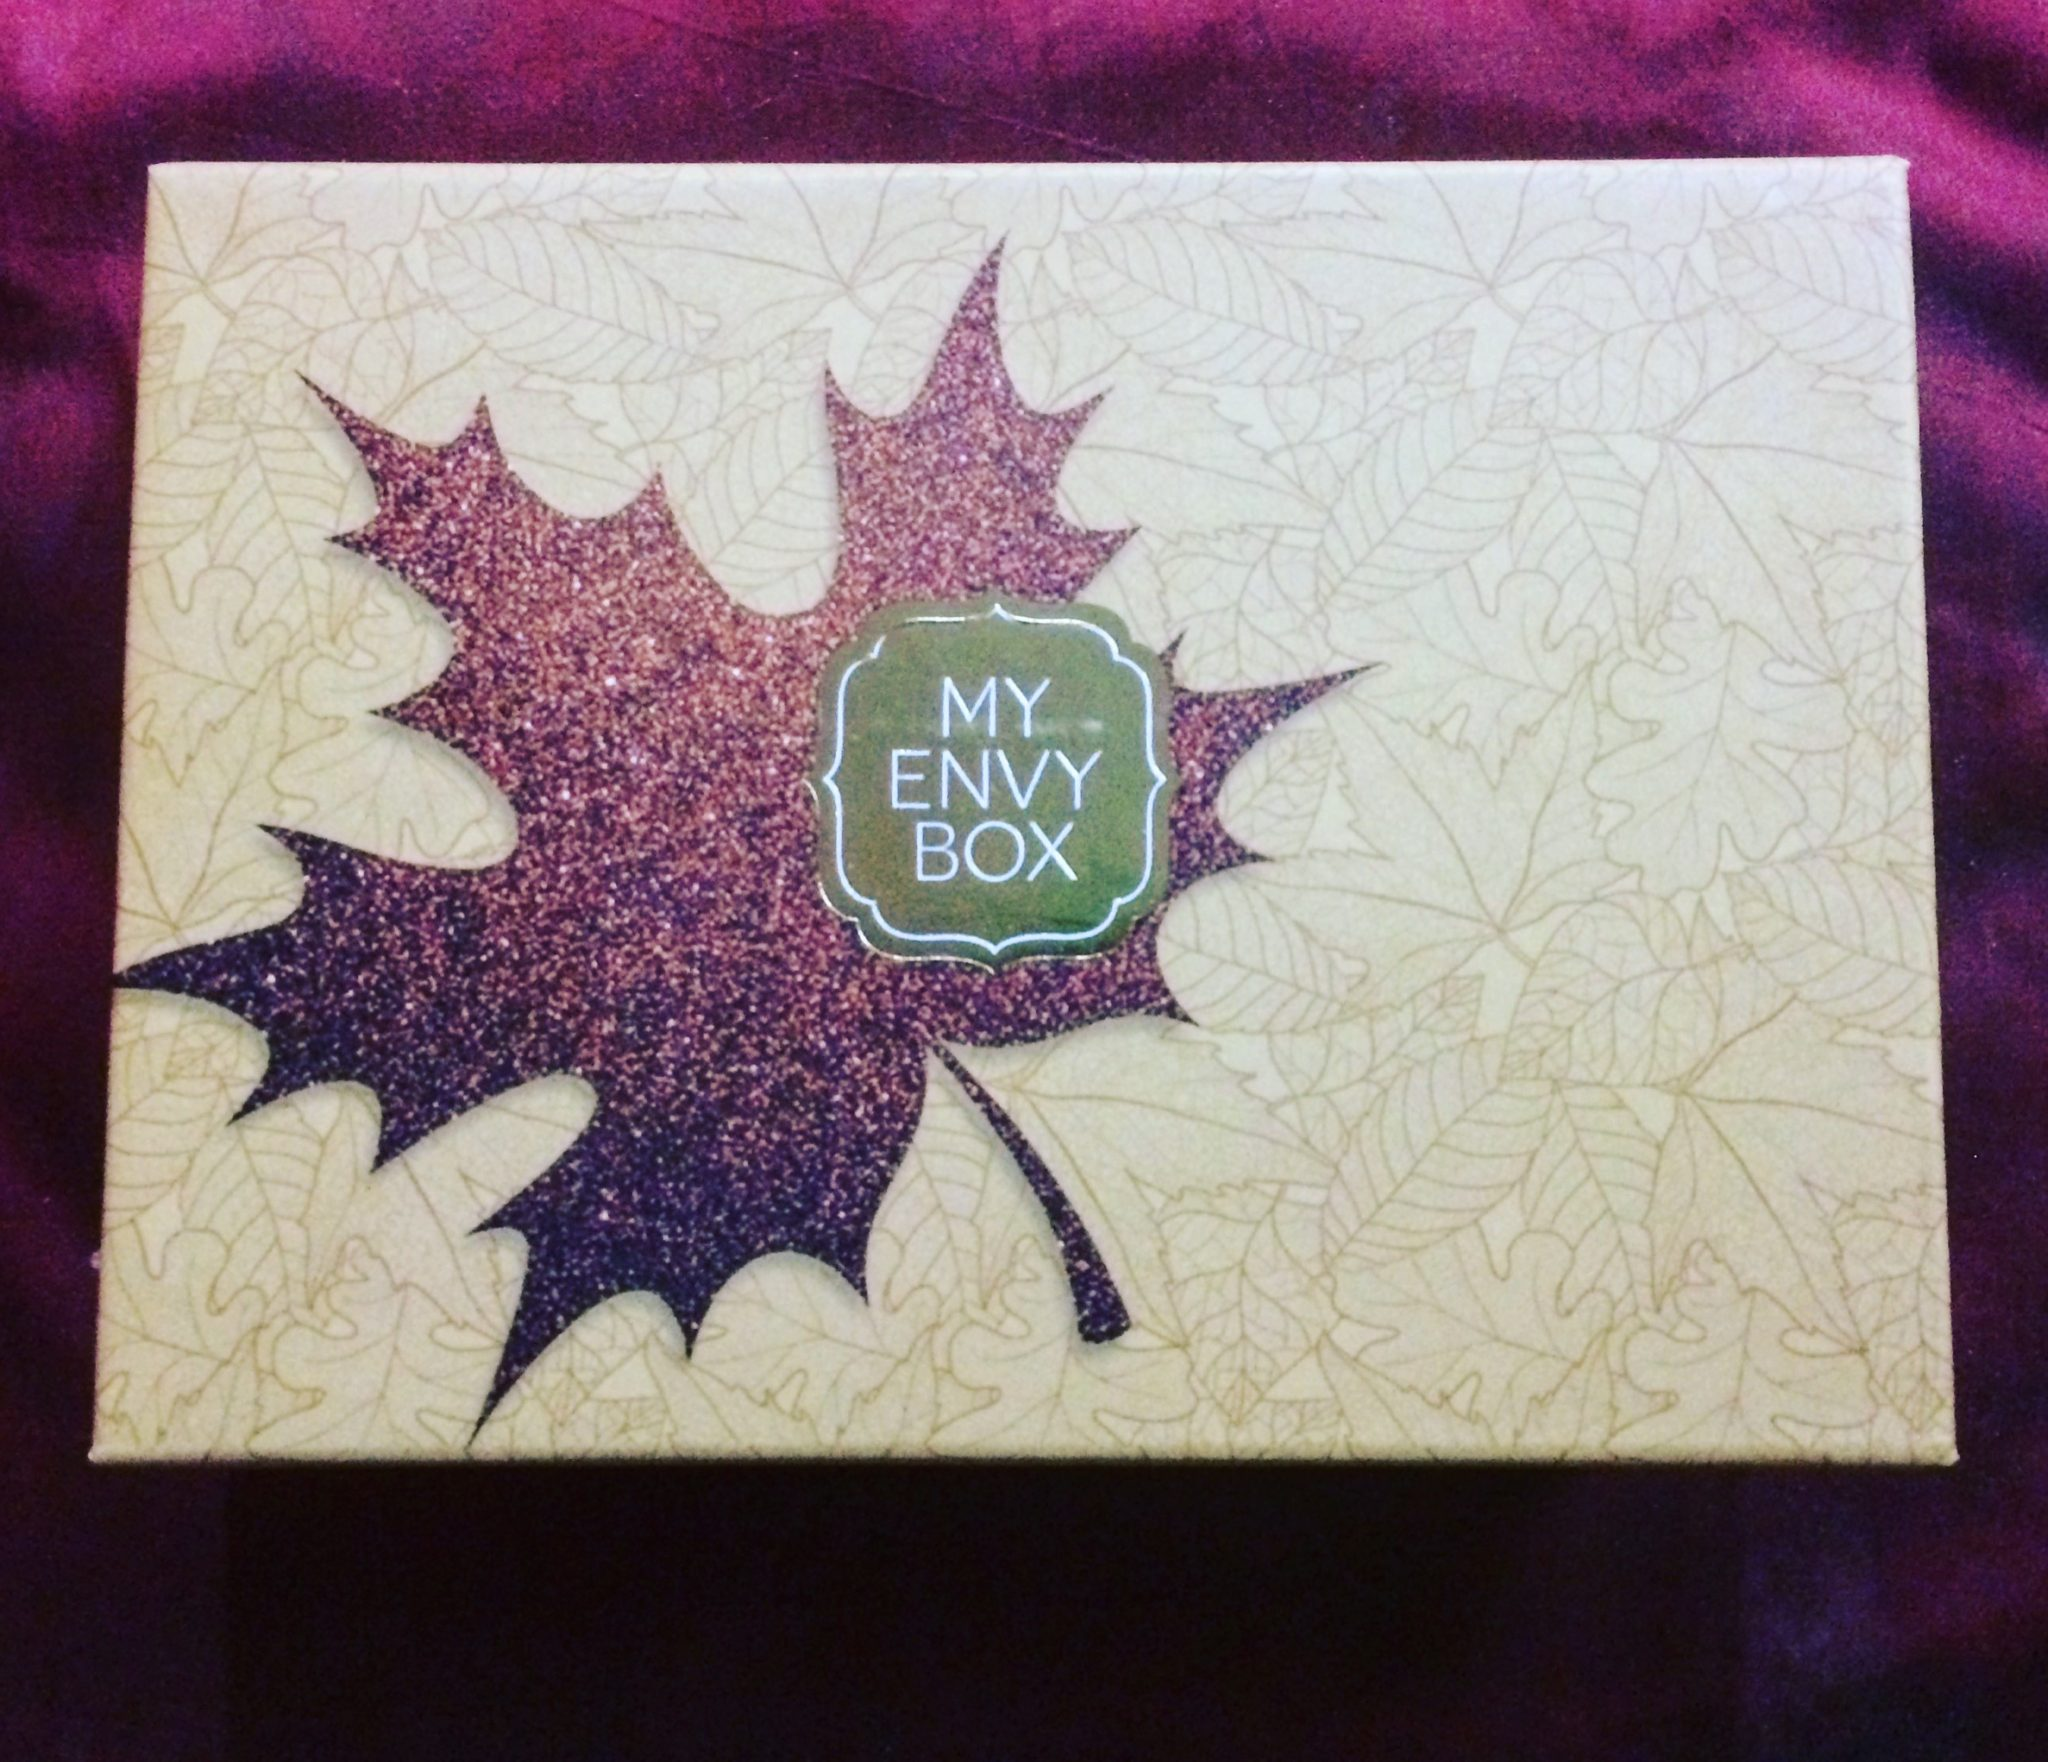 Unboxing my envy box november 2017 edition krazy butterfly unboxing my envy box november 2017 edition malvernweather Choice Image